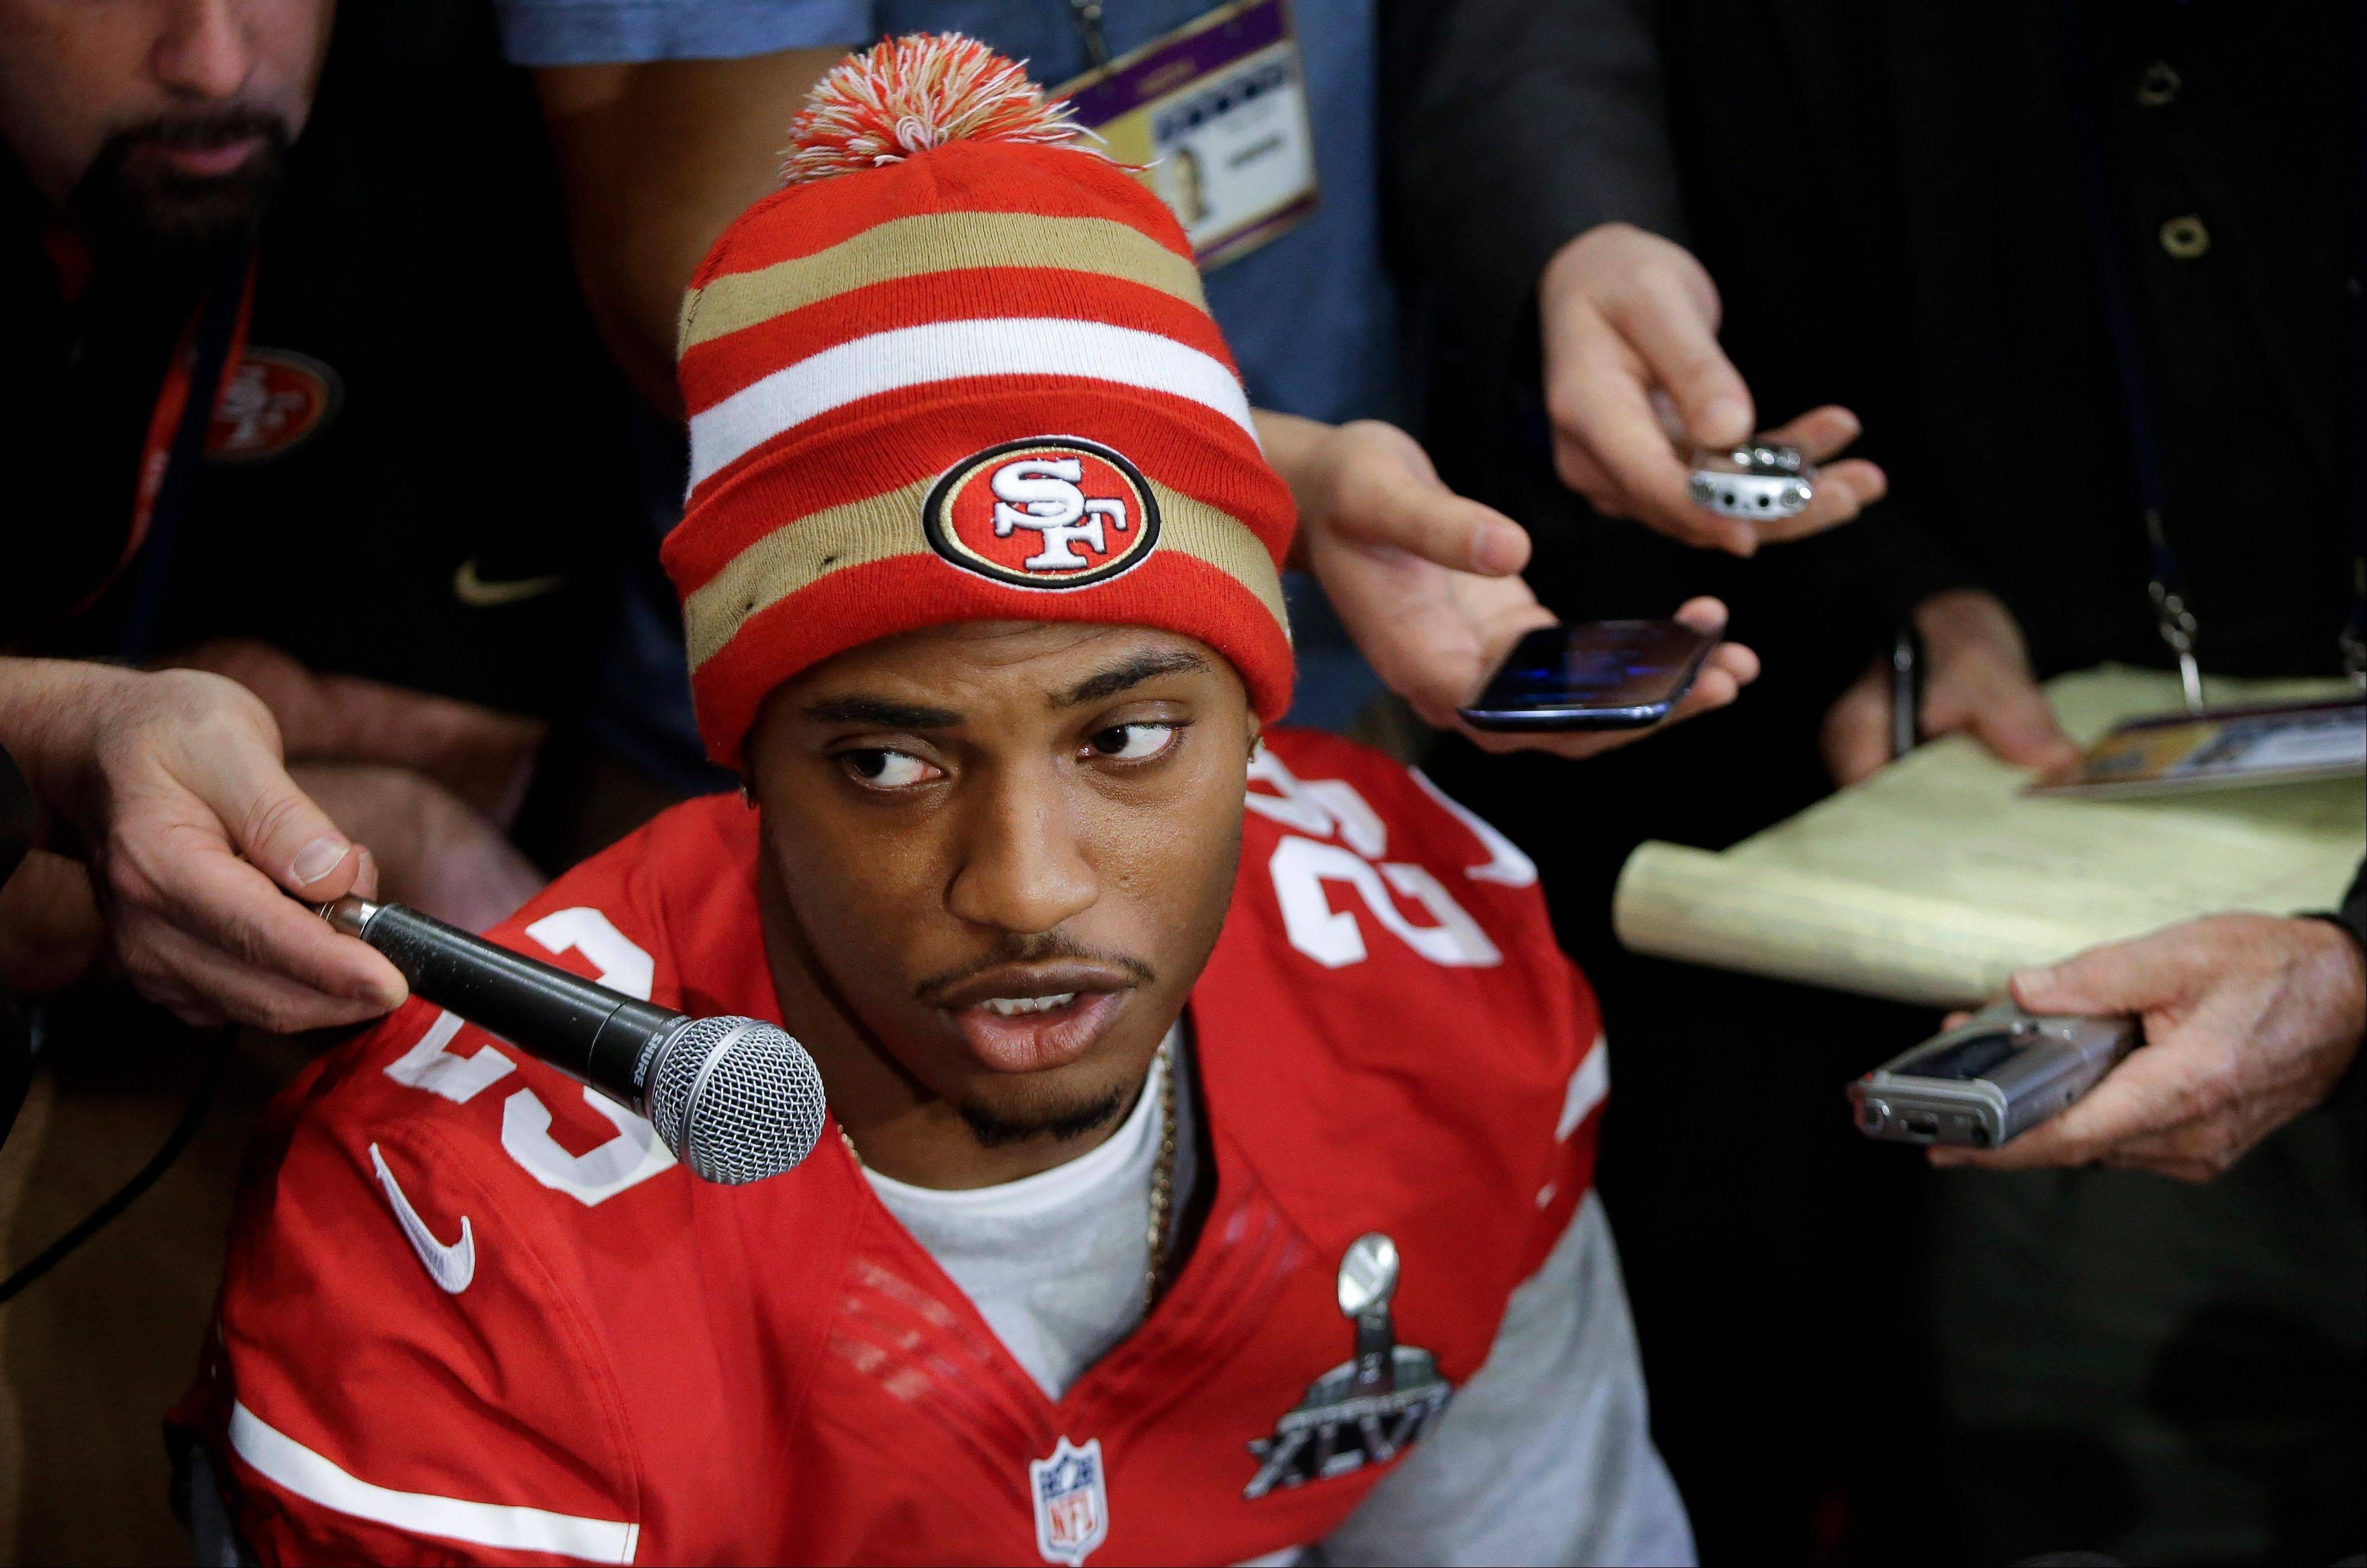 "San Francisco 49ers cornerback Chris Culliver answers questions Thursday, Jan. 31, 2013, in New Orleans, regarding anti-gay remarks he made during Super Bowl media day Tuesday. Culliver apologized for the comments he made to a comedian, saying ""that's not what I feel in my heart."" The 49ers are scheduled to play the Baltimore Ravens in the NFL Super Bowl XLVII football game on Feb. 3."